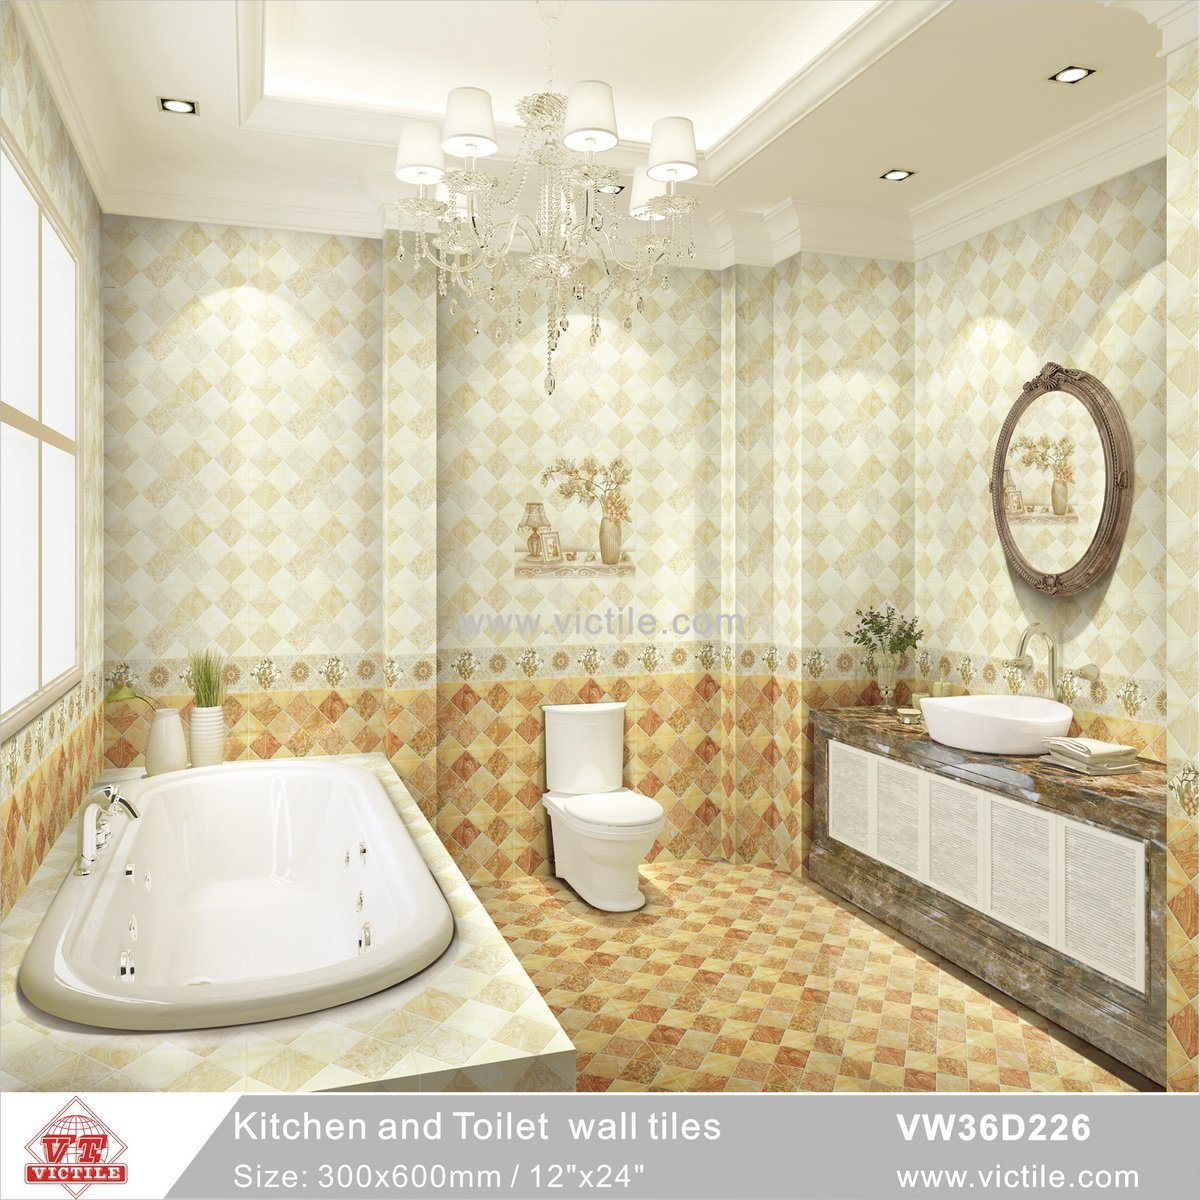 China Building Material 300*600 Ceramic Wall Tiles for Kitchen and ...